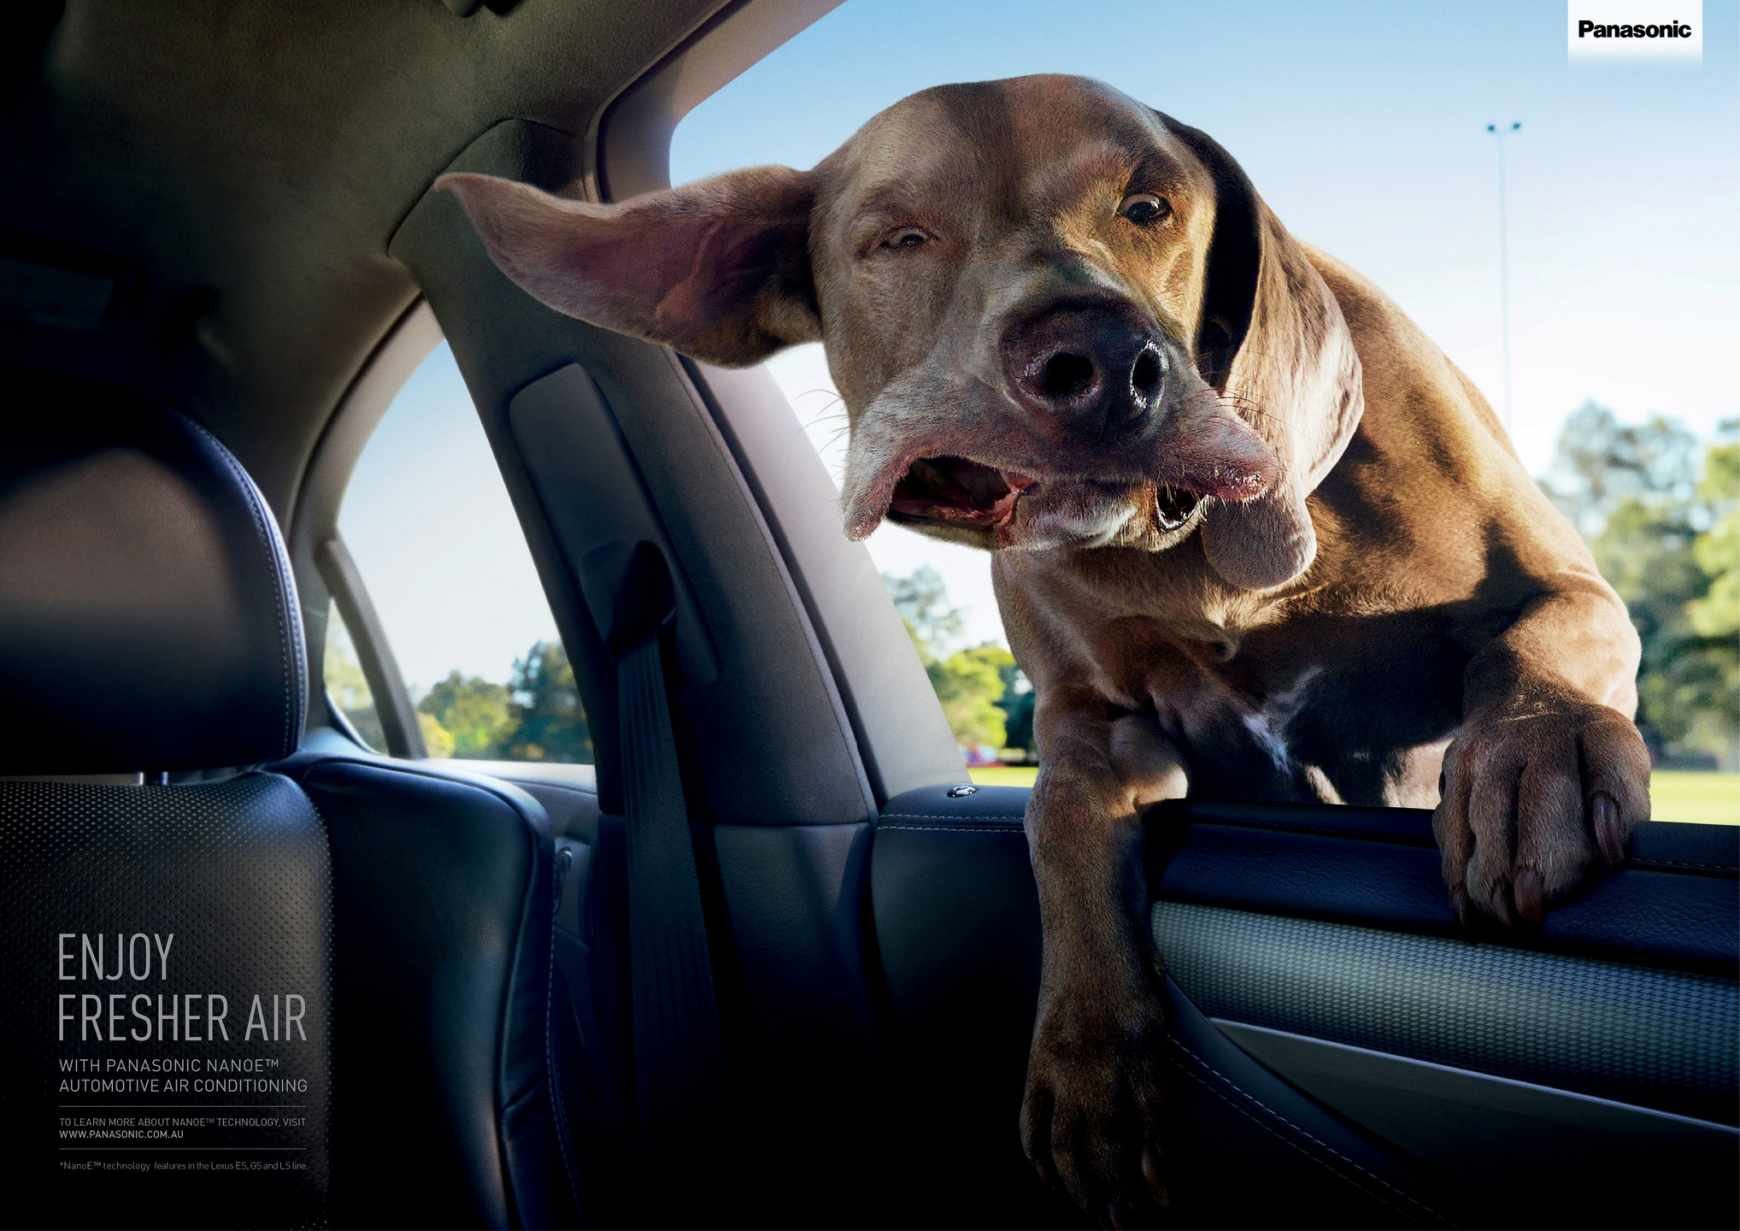 billboard-design-tips-and-examples-confused-dog